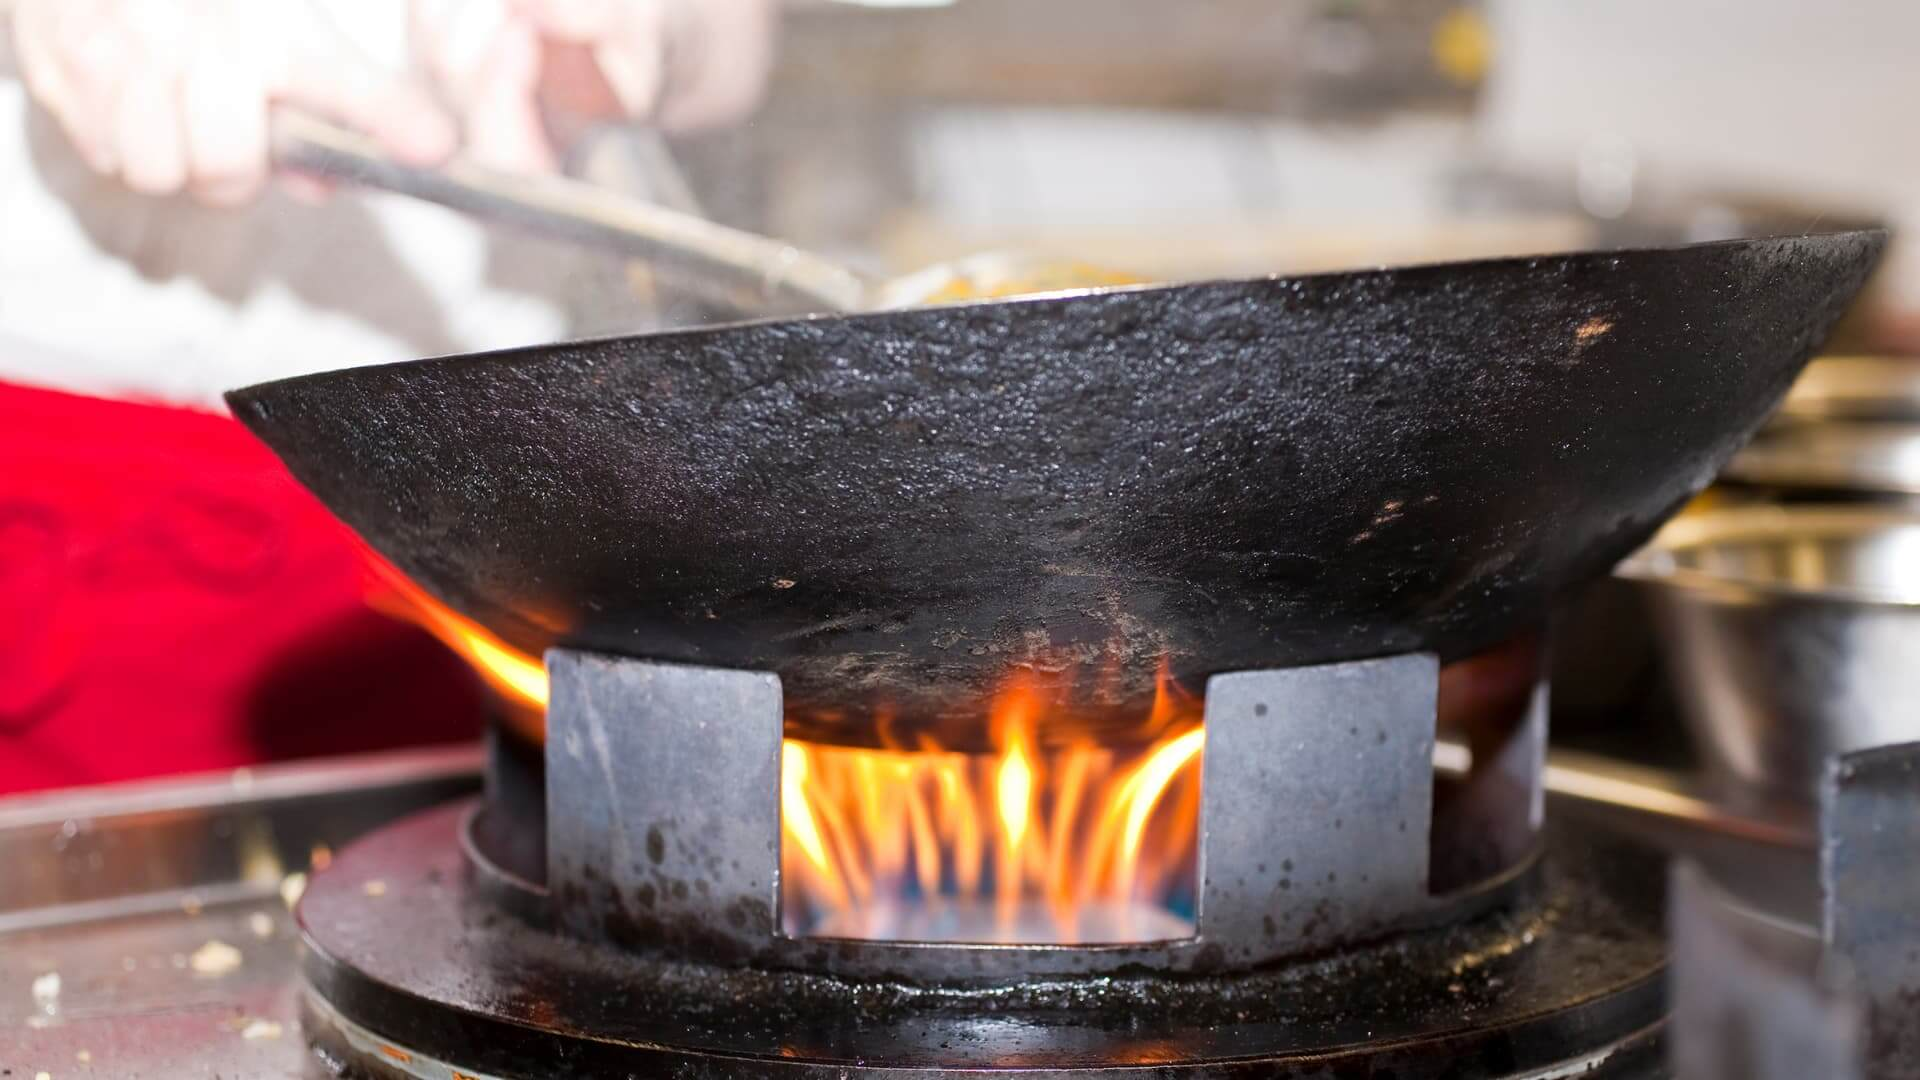 How to season steel wok